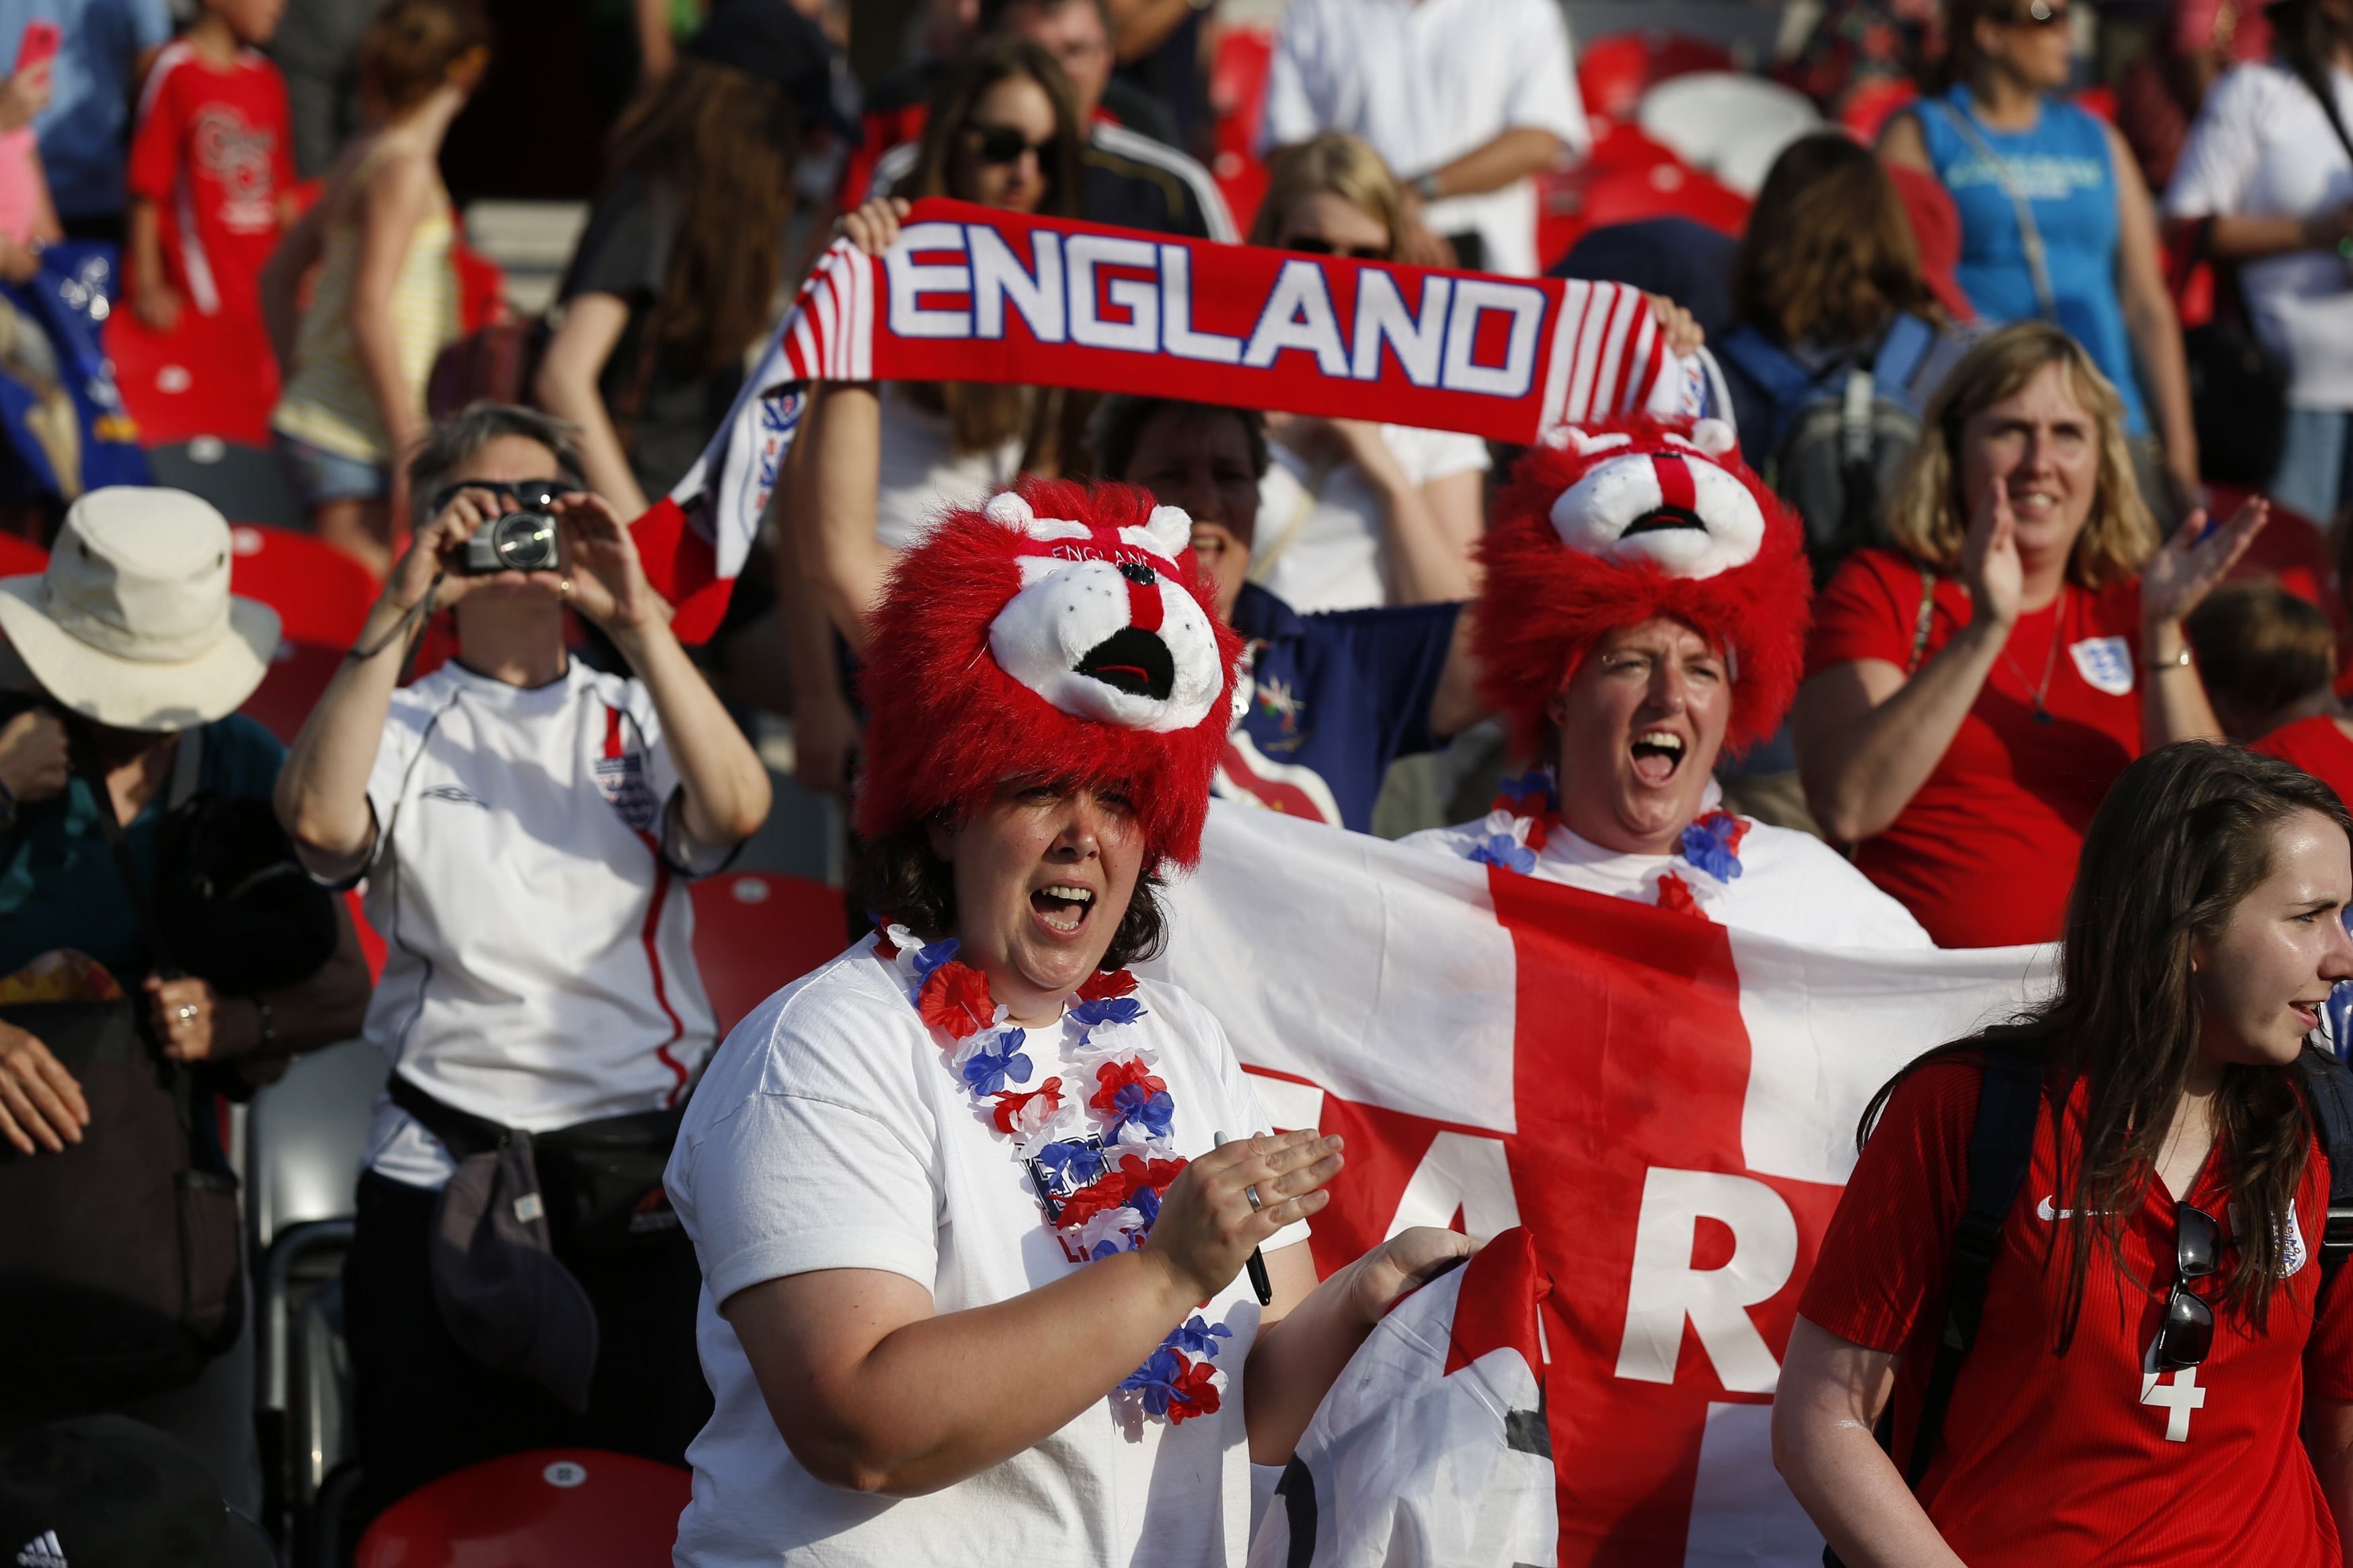 FIFA Women's World Cup - fan imagery to engage viewers of the article